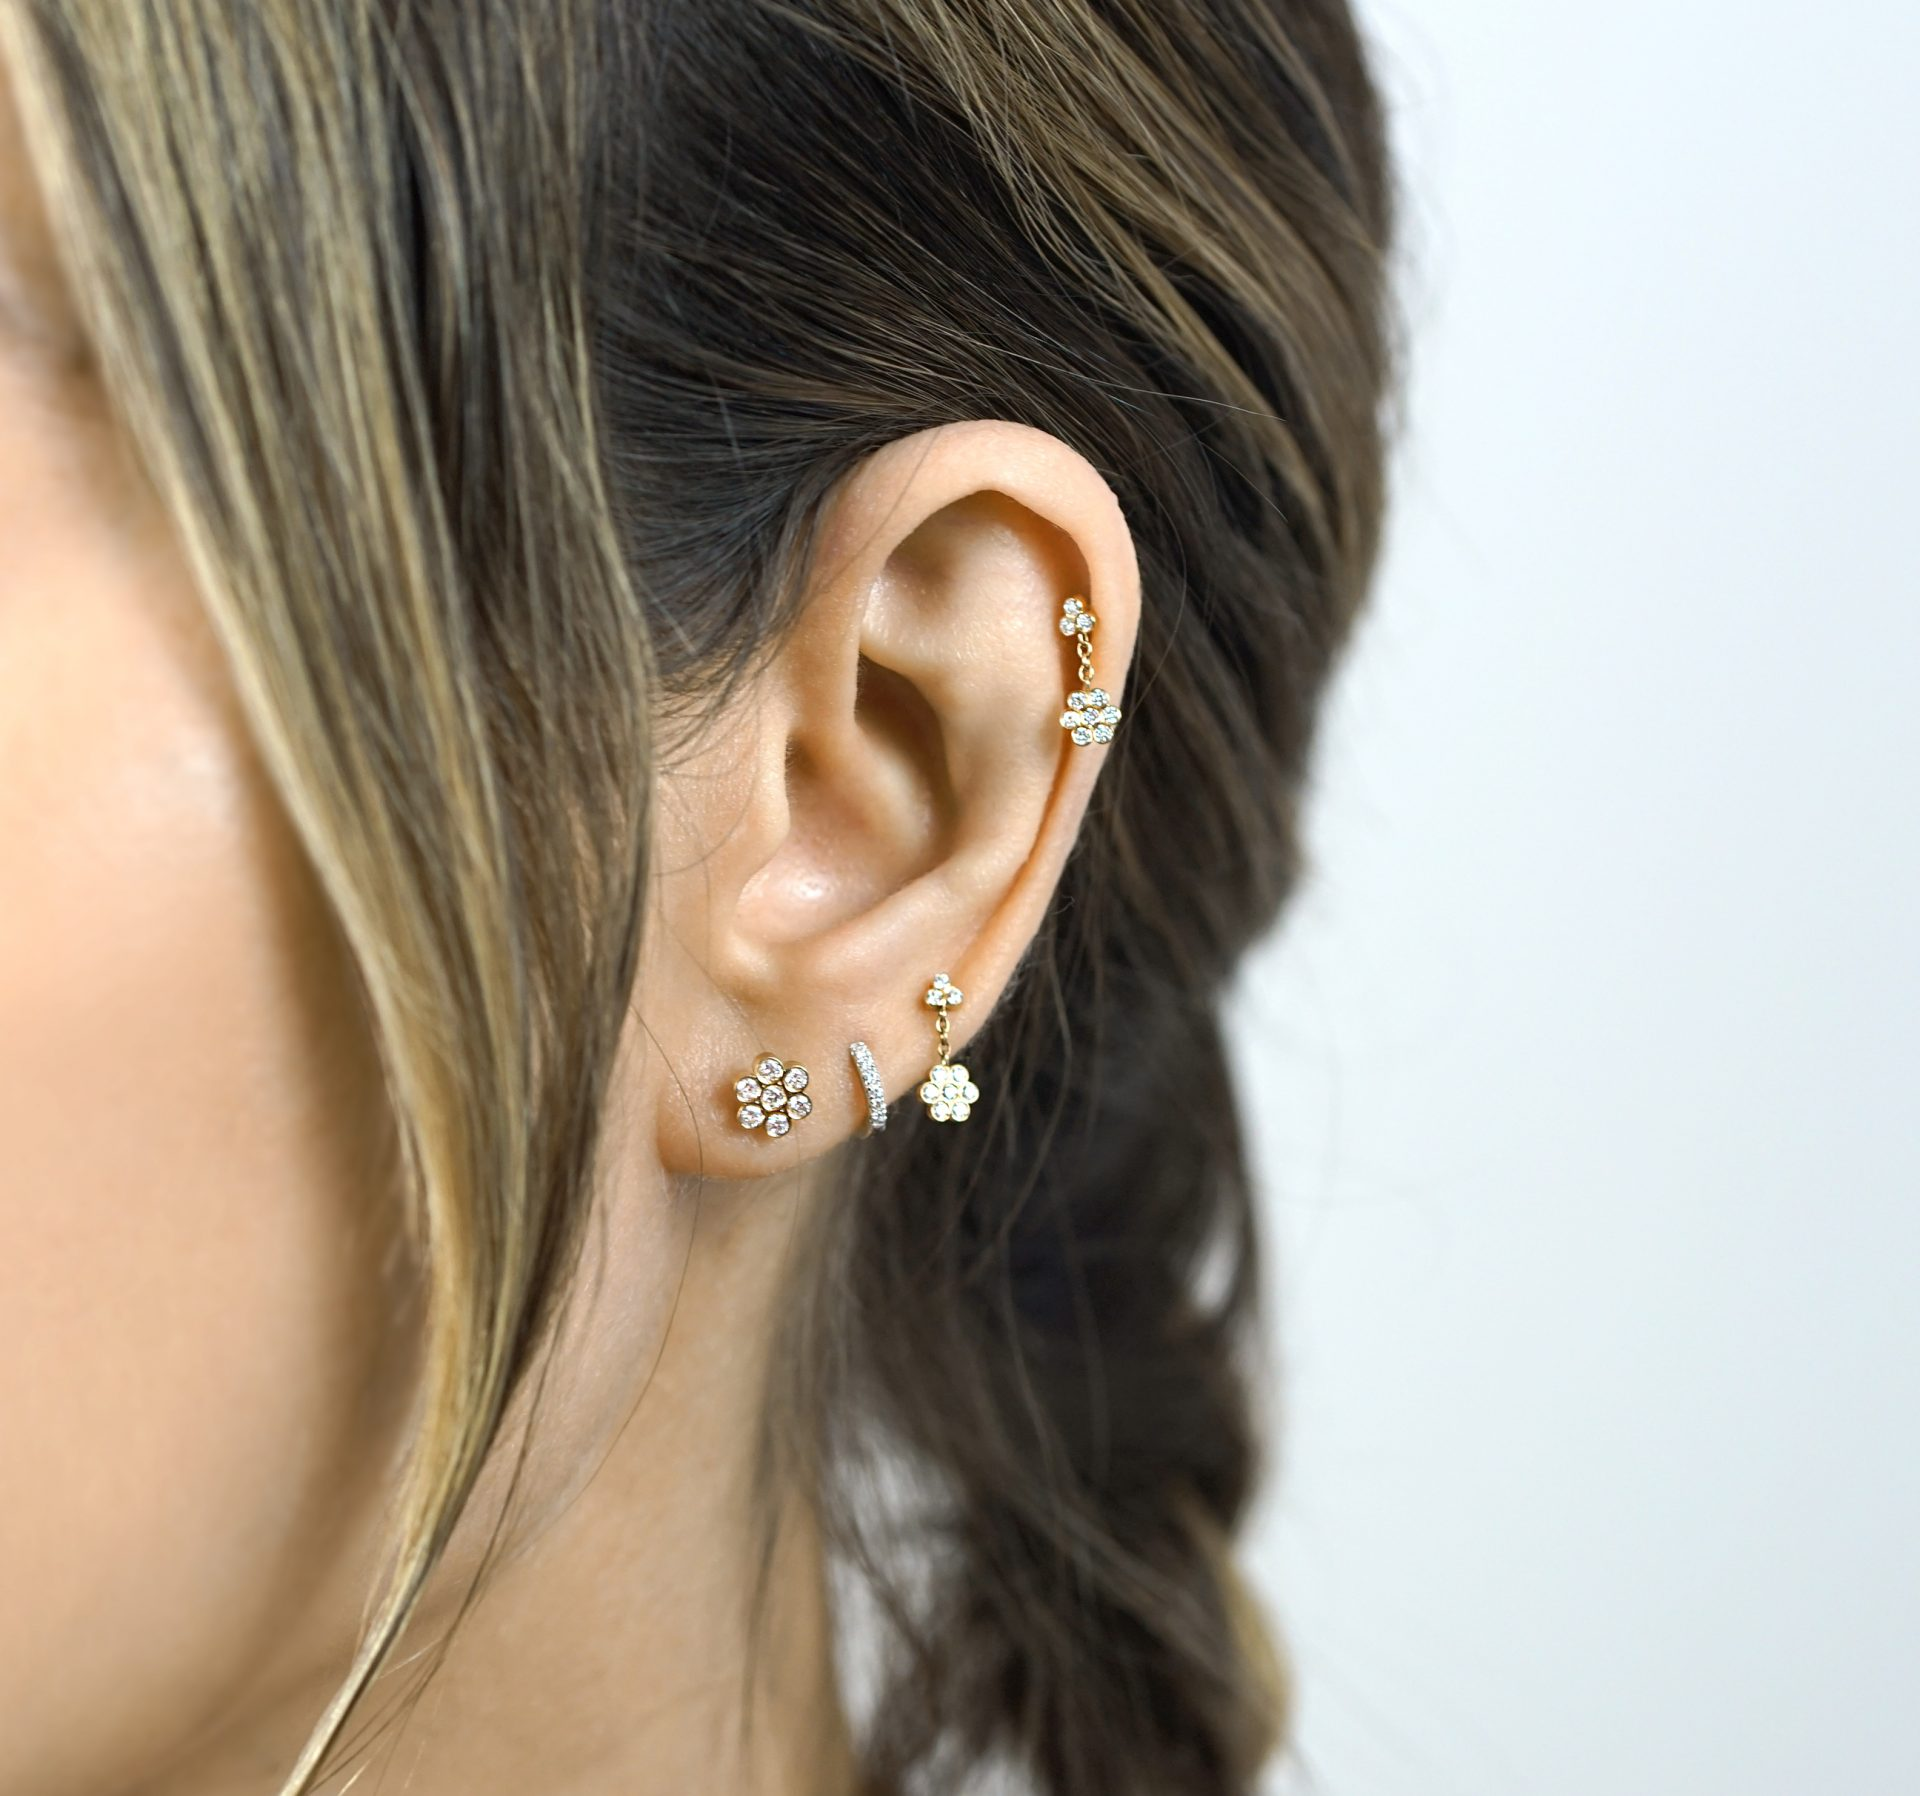 18k-solid-gold-natural-diamonds-luxury-piercing-designer-cartilage-earrings-lena-cohen-london